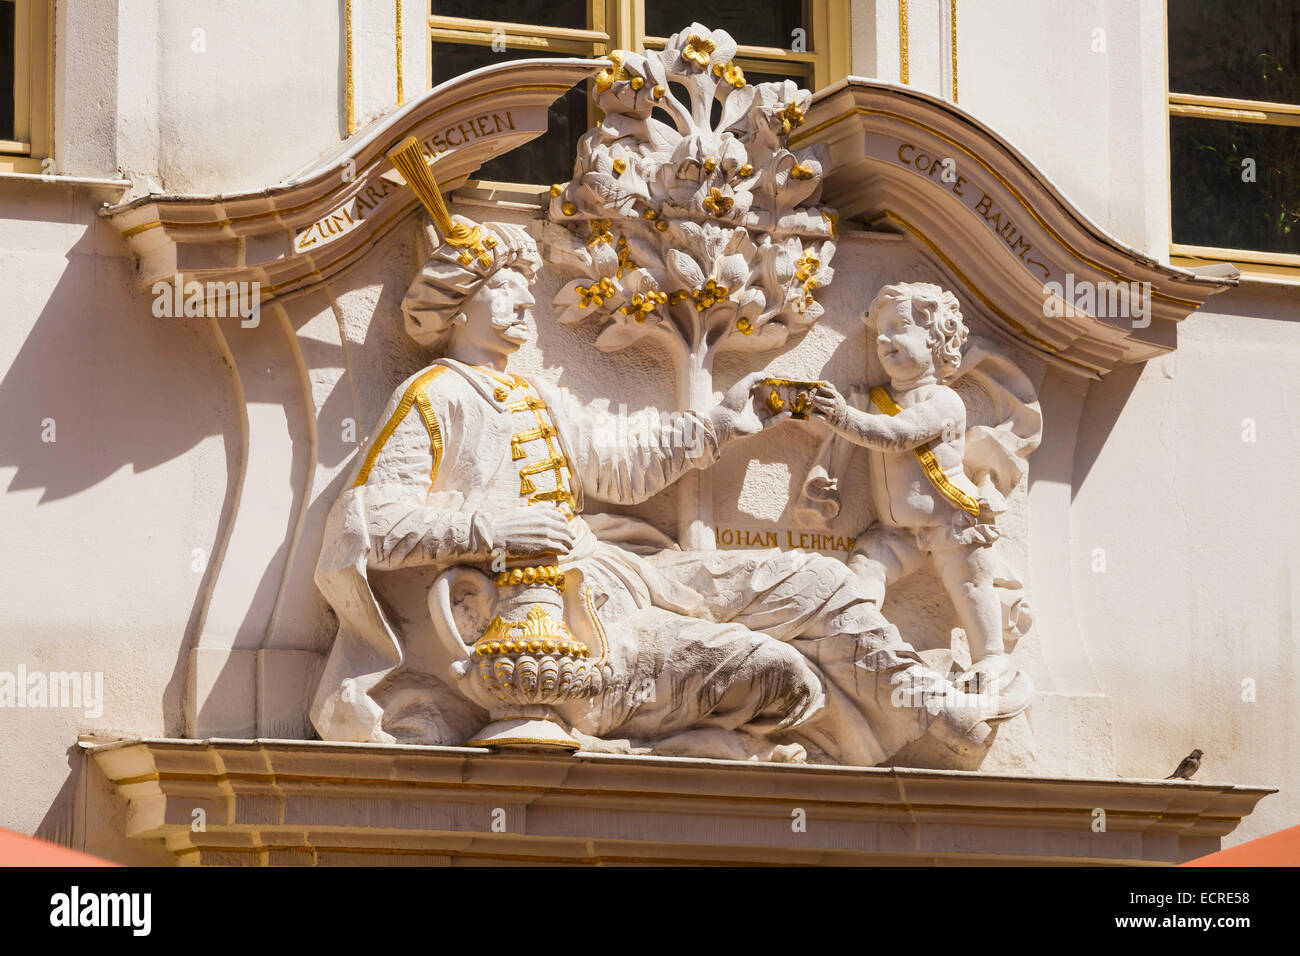 SCULPTURE AT THE ENTRANCE, ZUM ARABISCHEN COFFE BAUM, COFFEE MUSEUM, RESTAURANT, CAFE, LEIPZIG, SAXONY, GERMANY - Stock Image